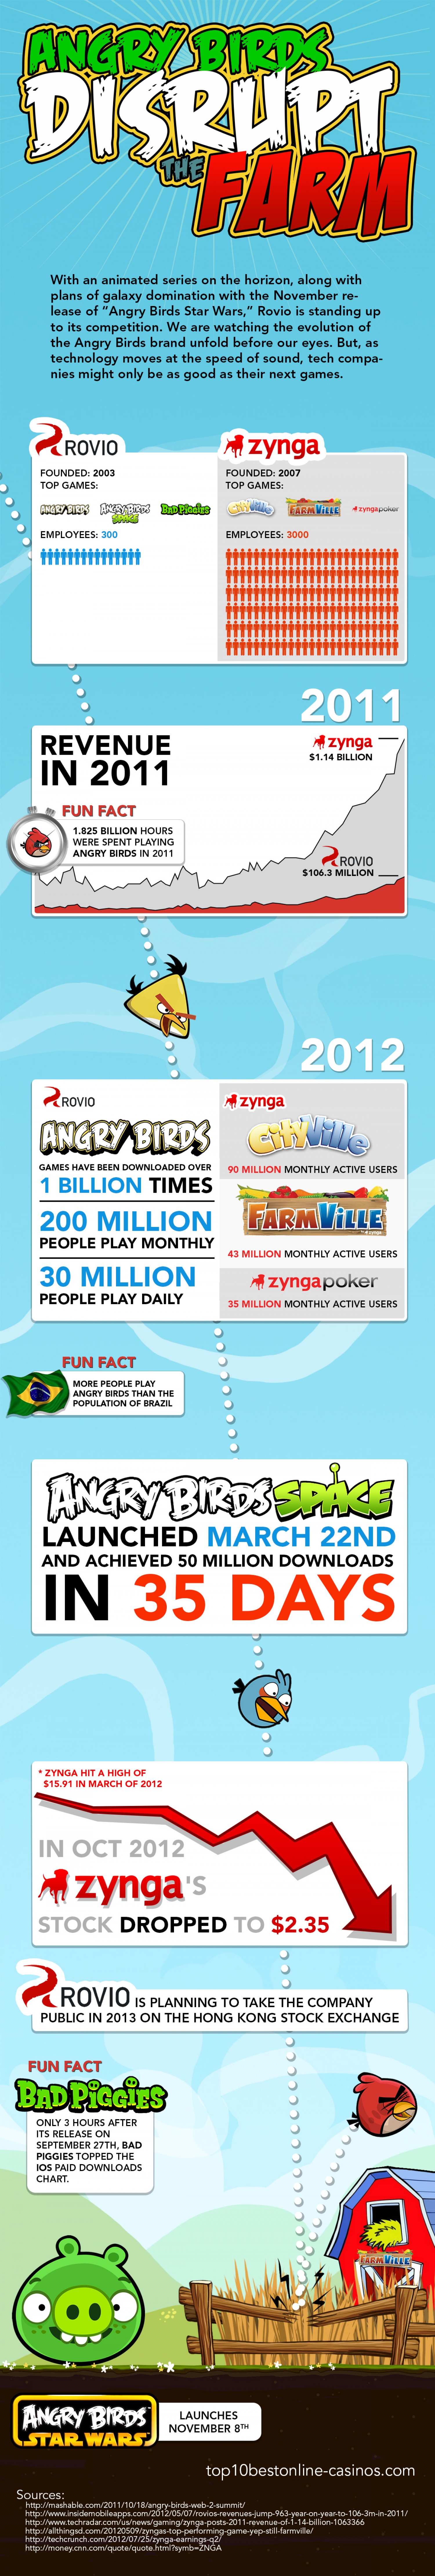 Angry Birds Disrupt the Farm Infographic